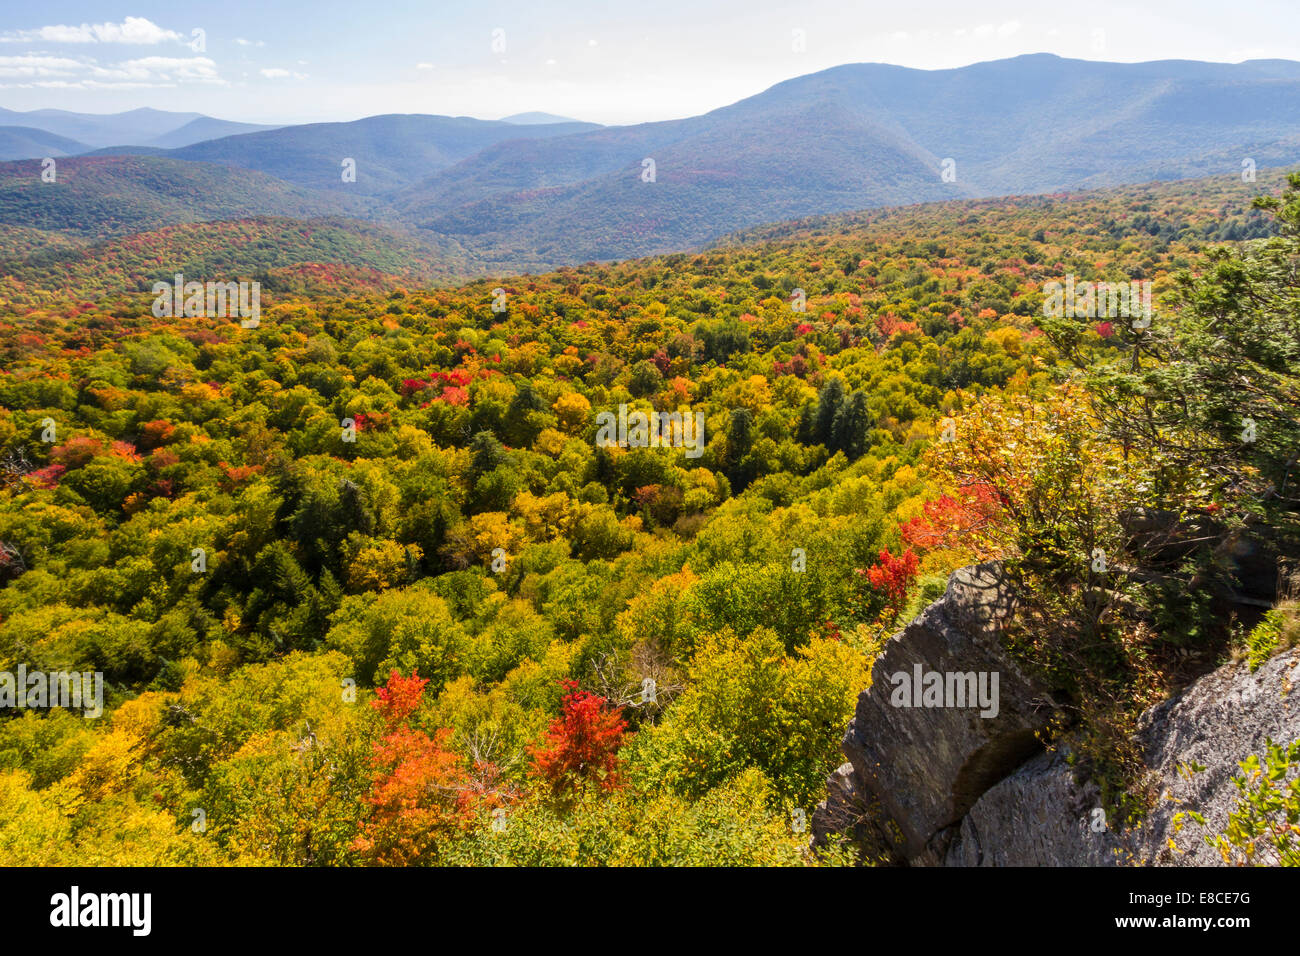 Slide Mountain, Woodland Valley and surrounding mountains seen from Giant Ledge in the Catskills Mountains of  upstate - Stock Image